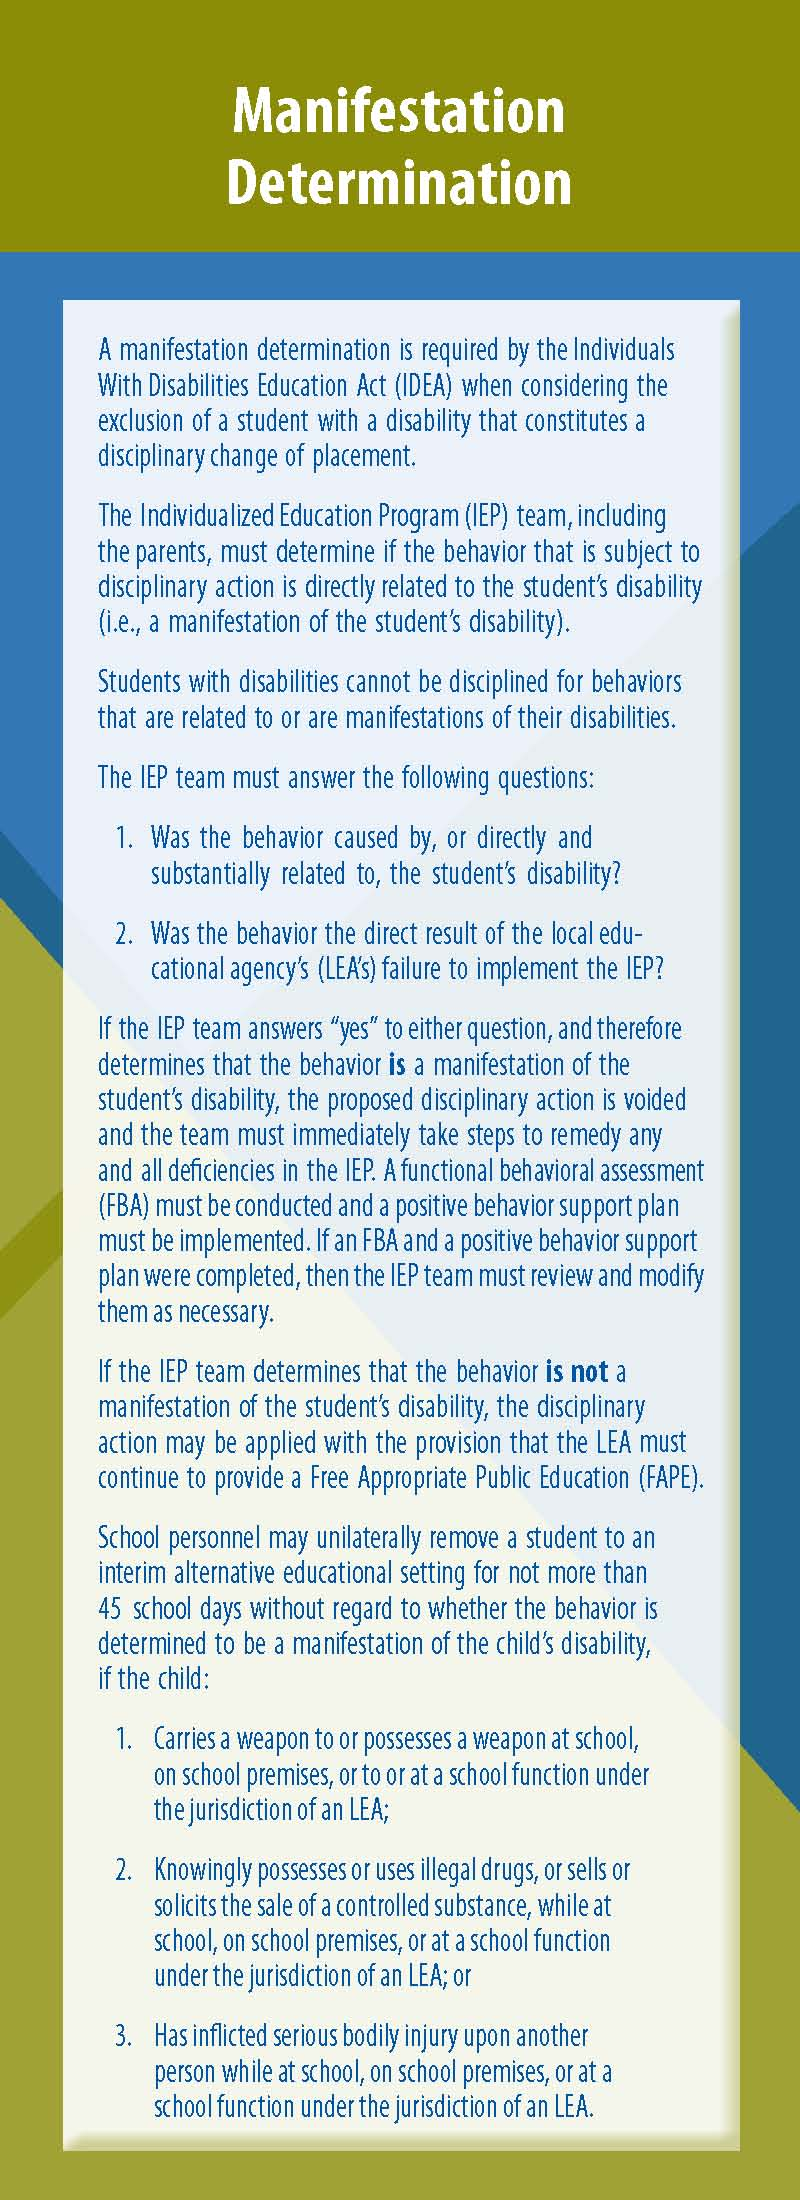 12 Warning Signs Iep Team Is Not Doing >> Pattan Publications